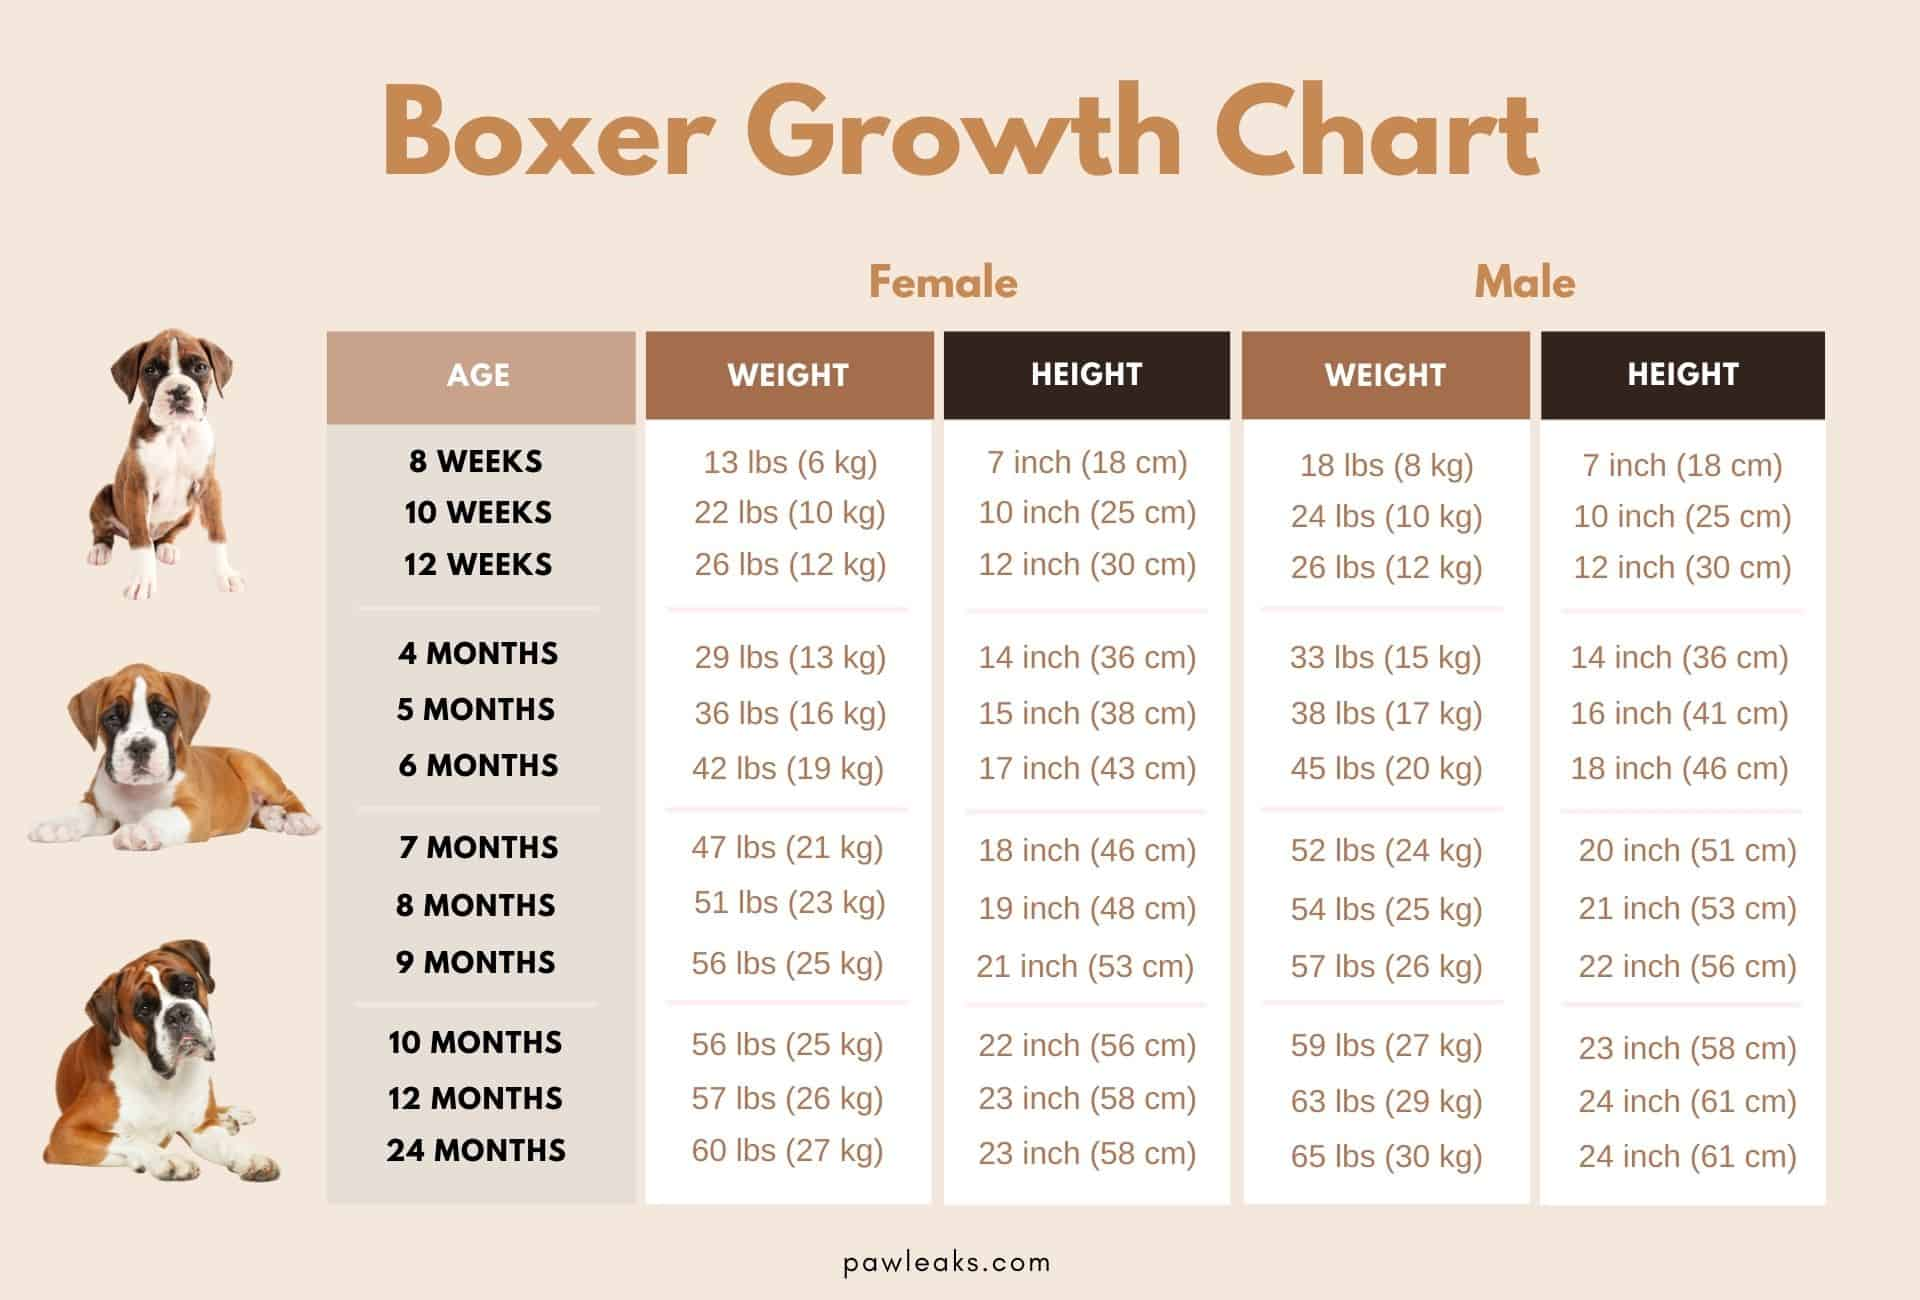 Boxer growth chart.